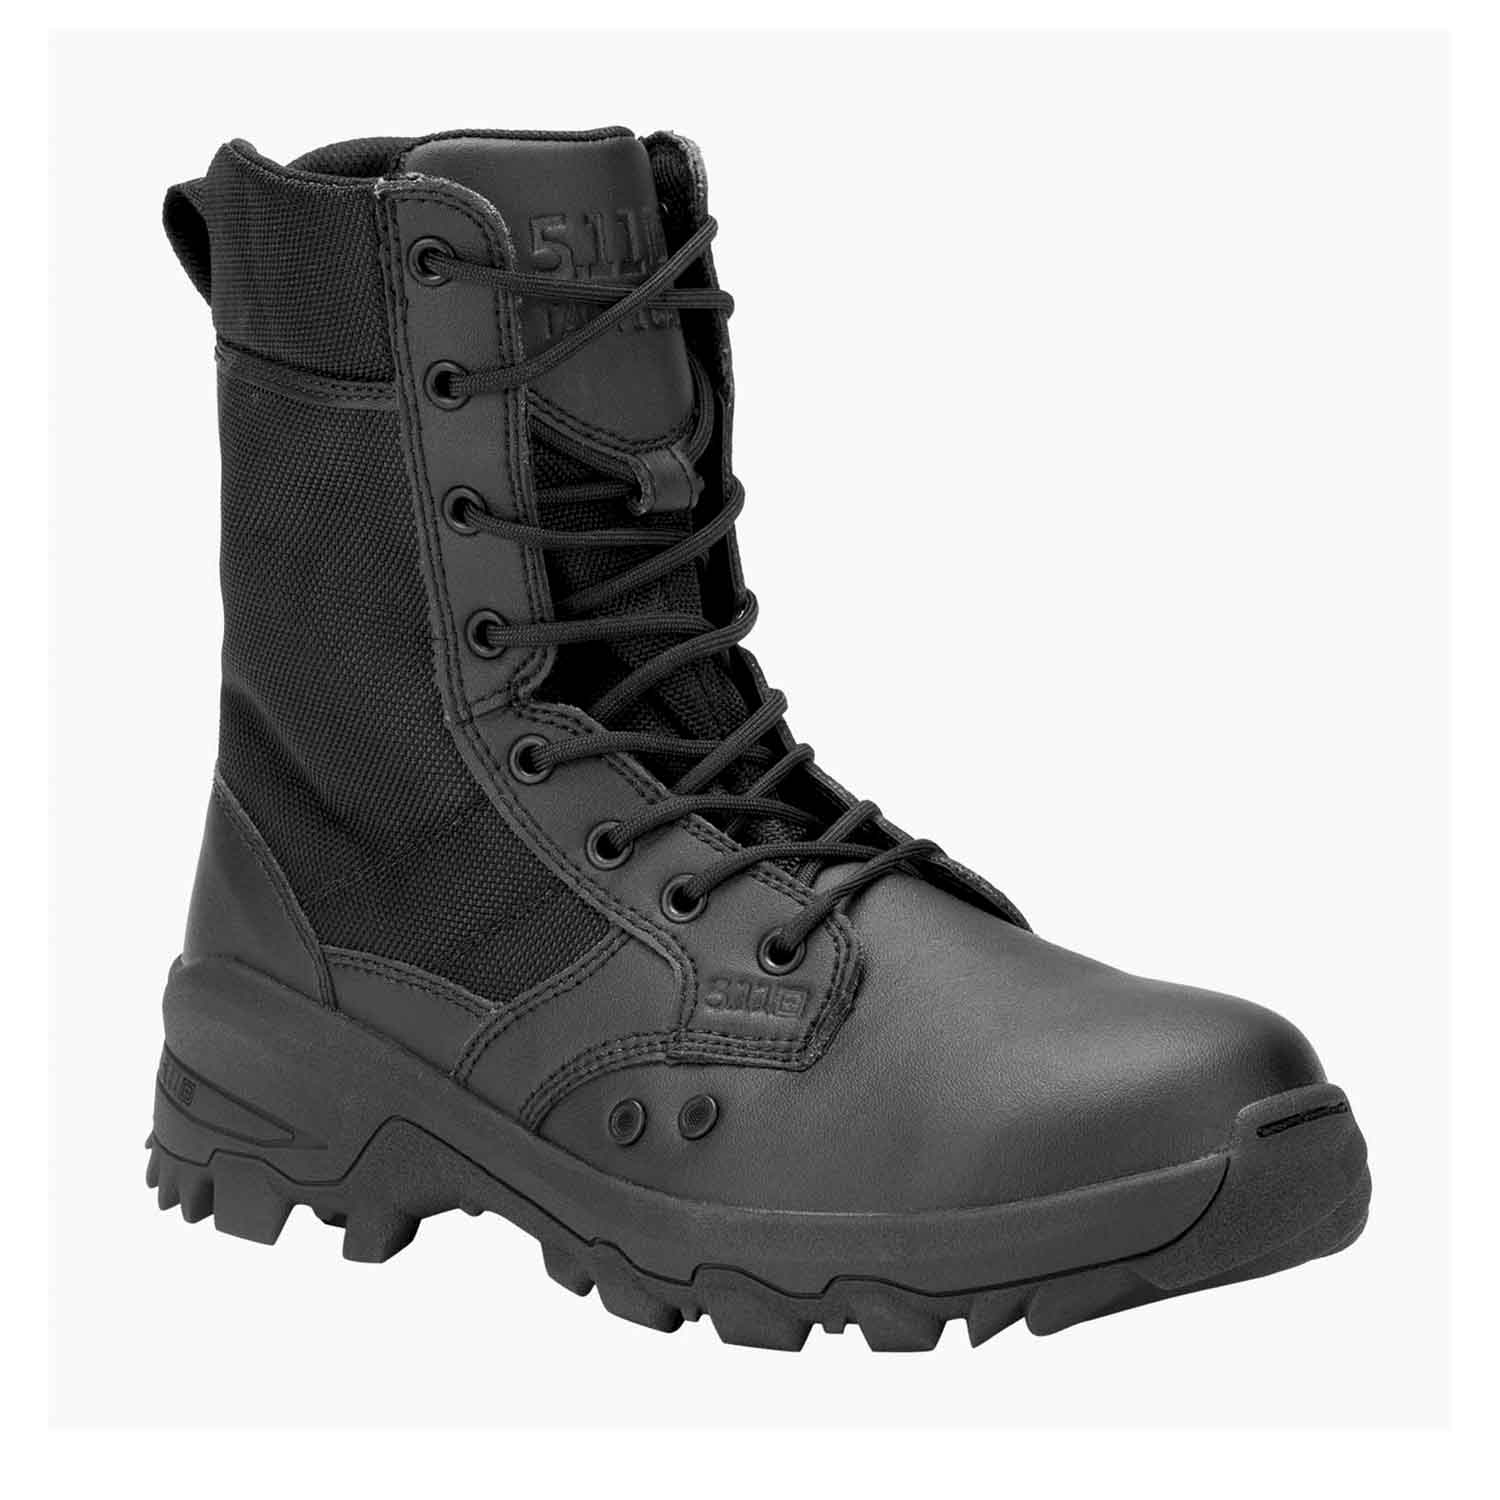 5.11 Tactical Jungle Road Speed 3.0